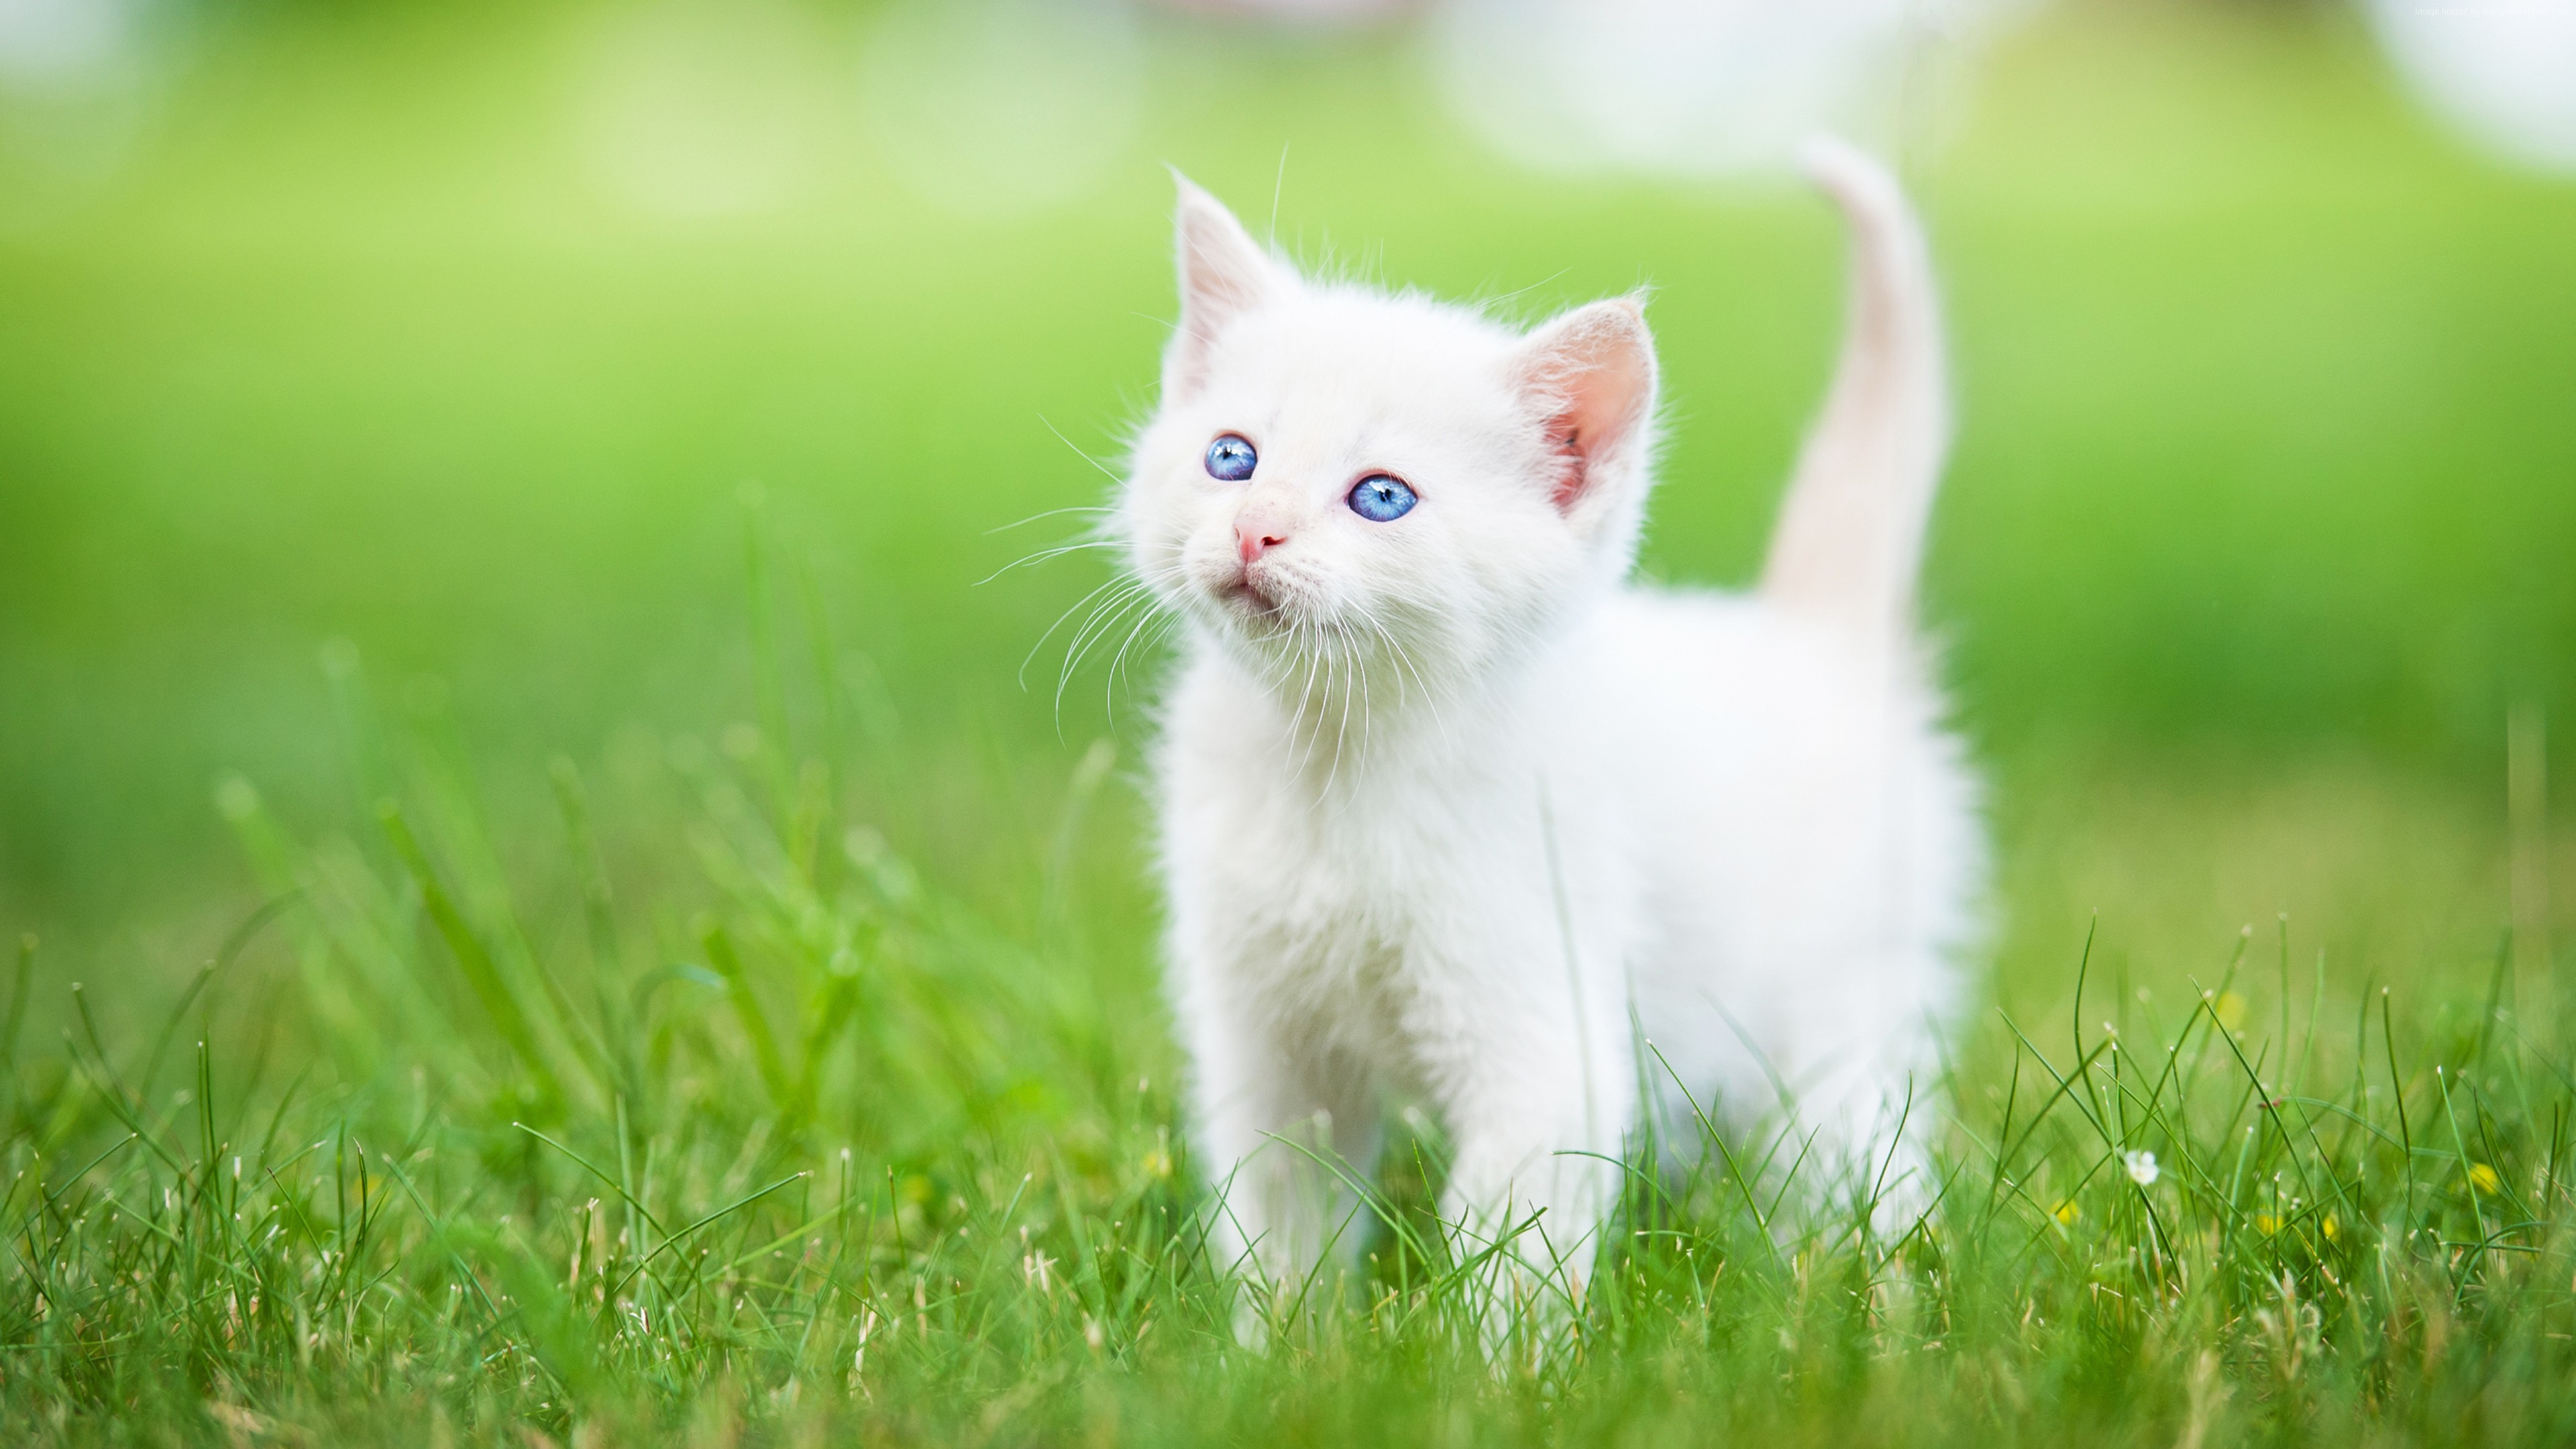 Wallpaper kitten, cute animals, grass, 5k, Animals